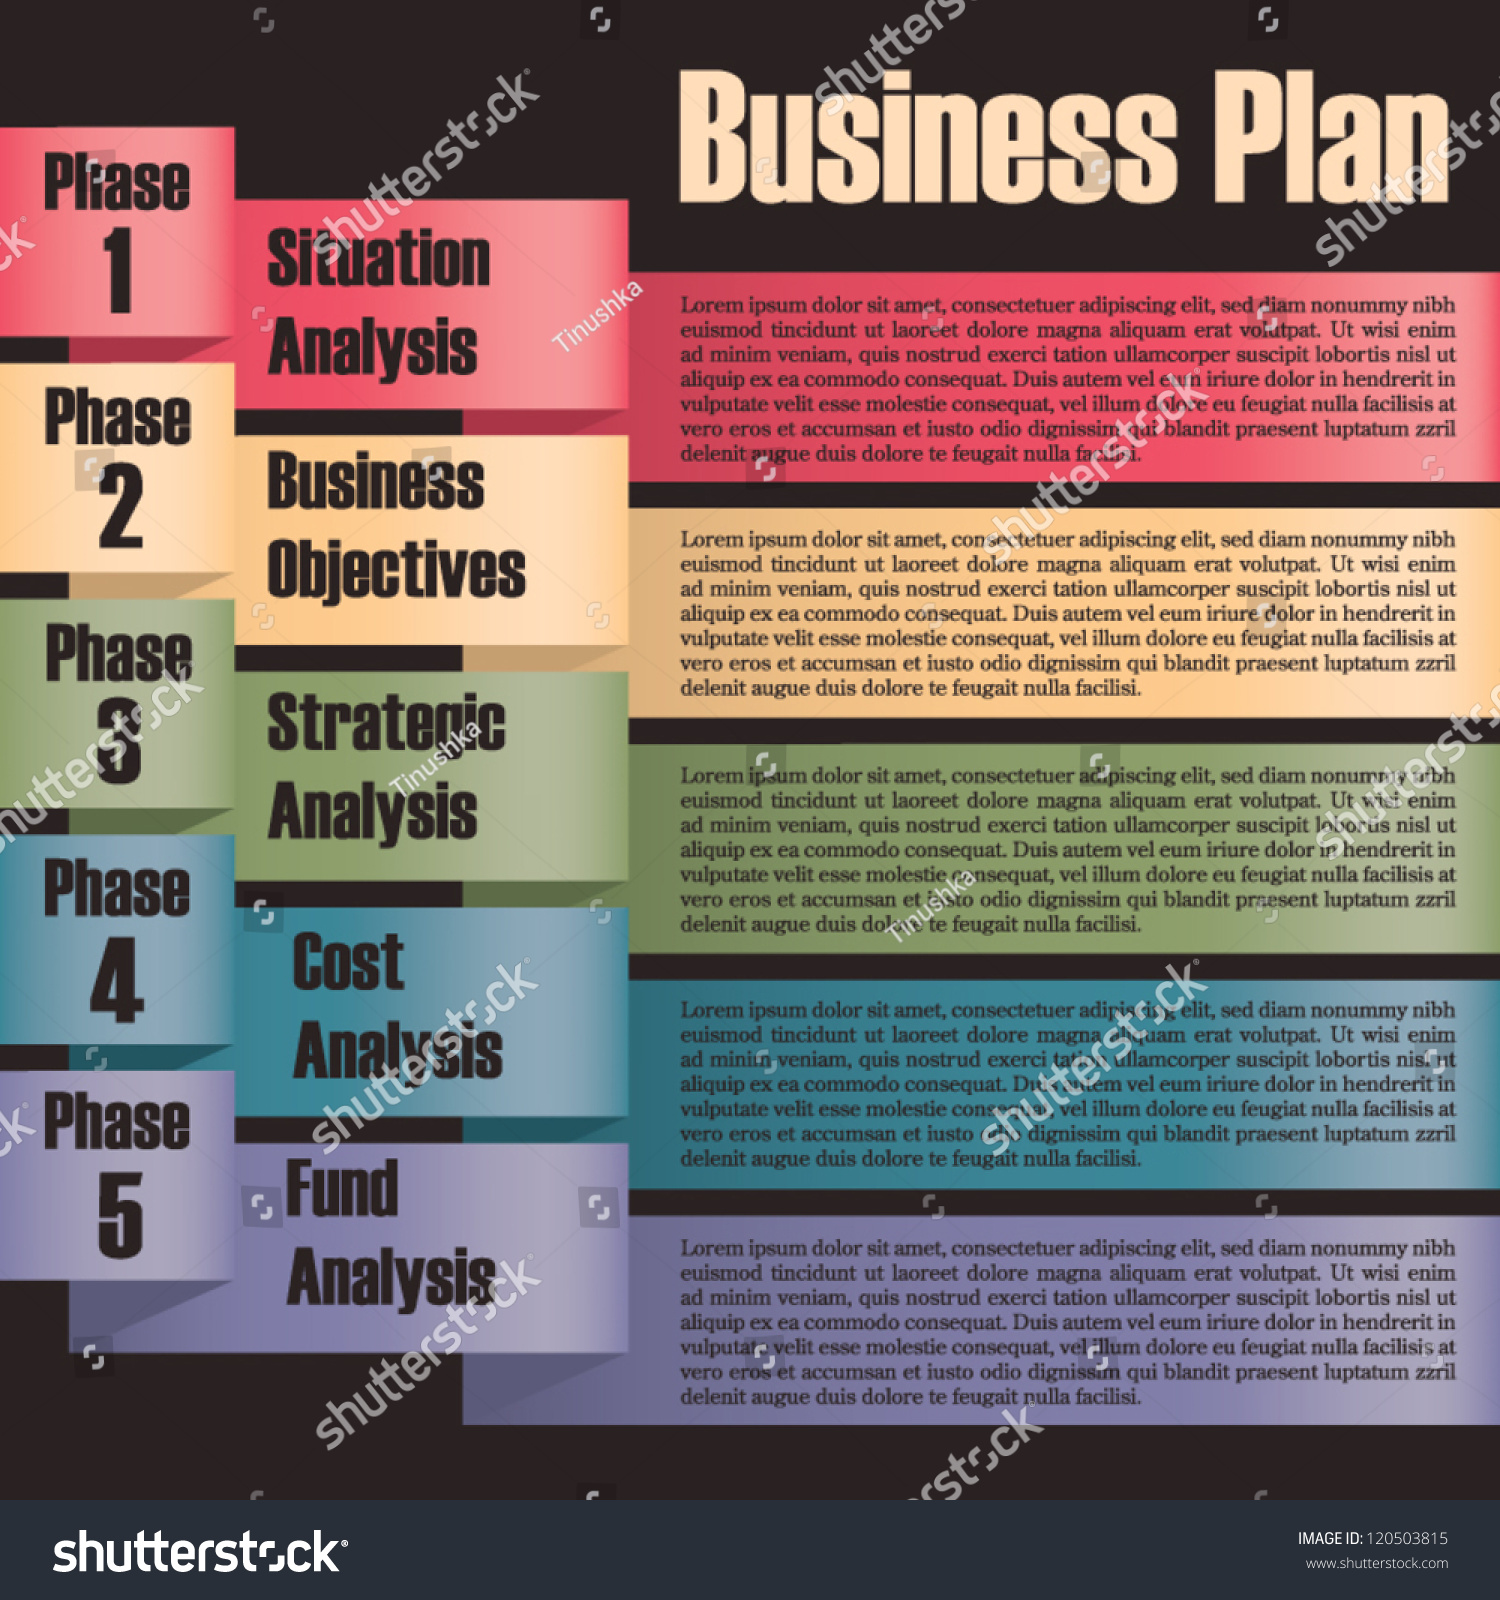 Business Plan Modern Design Template Presentation Stock Vector 120503815 Shutterstock